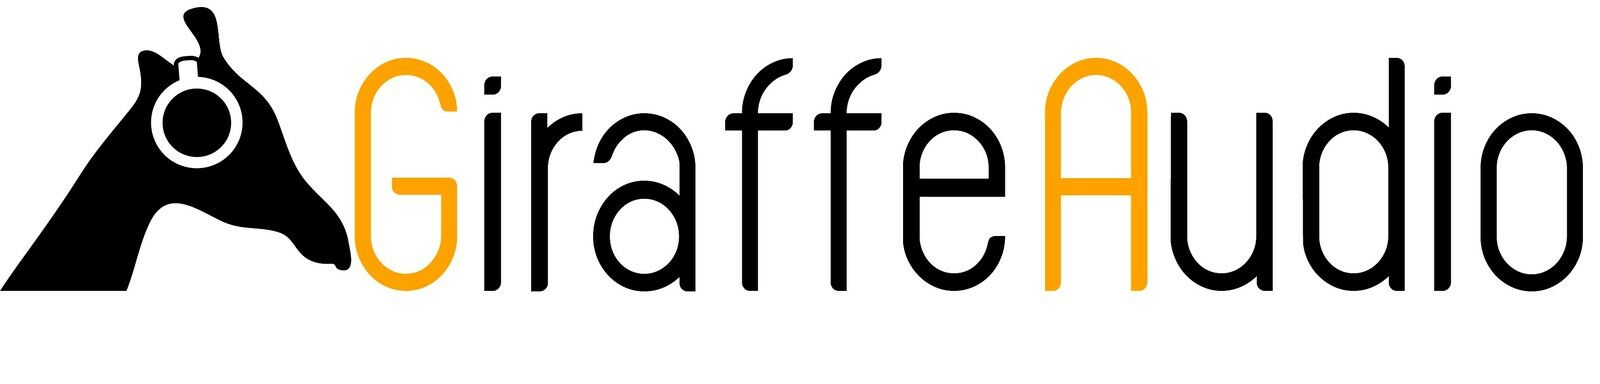 Giraffe Audio Outlet